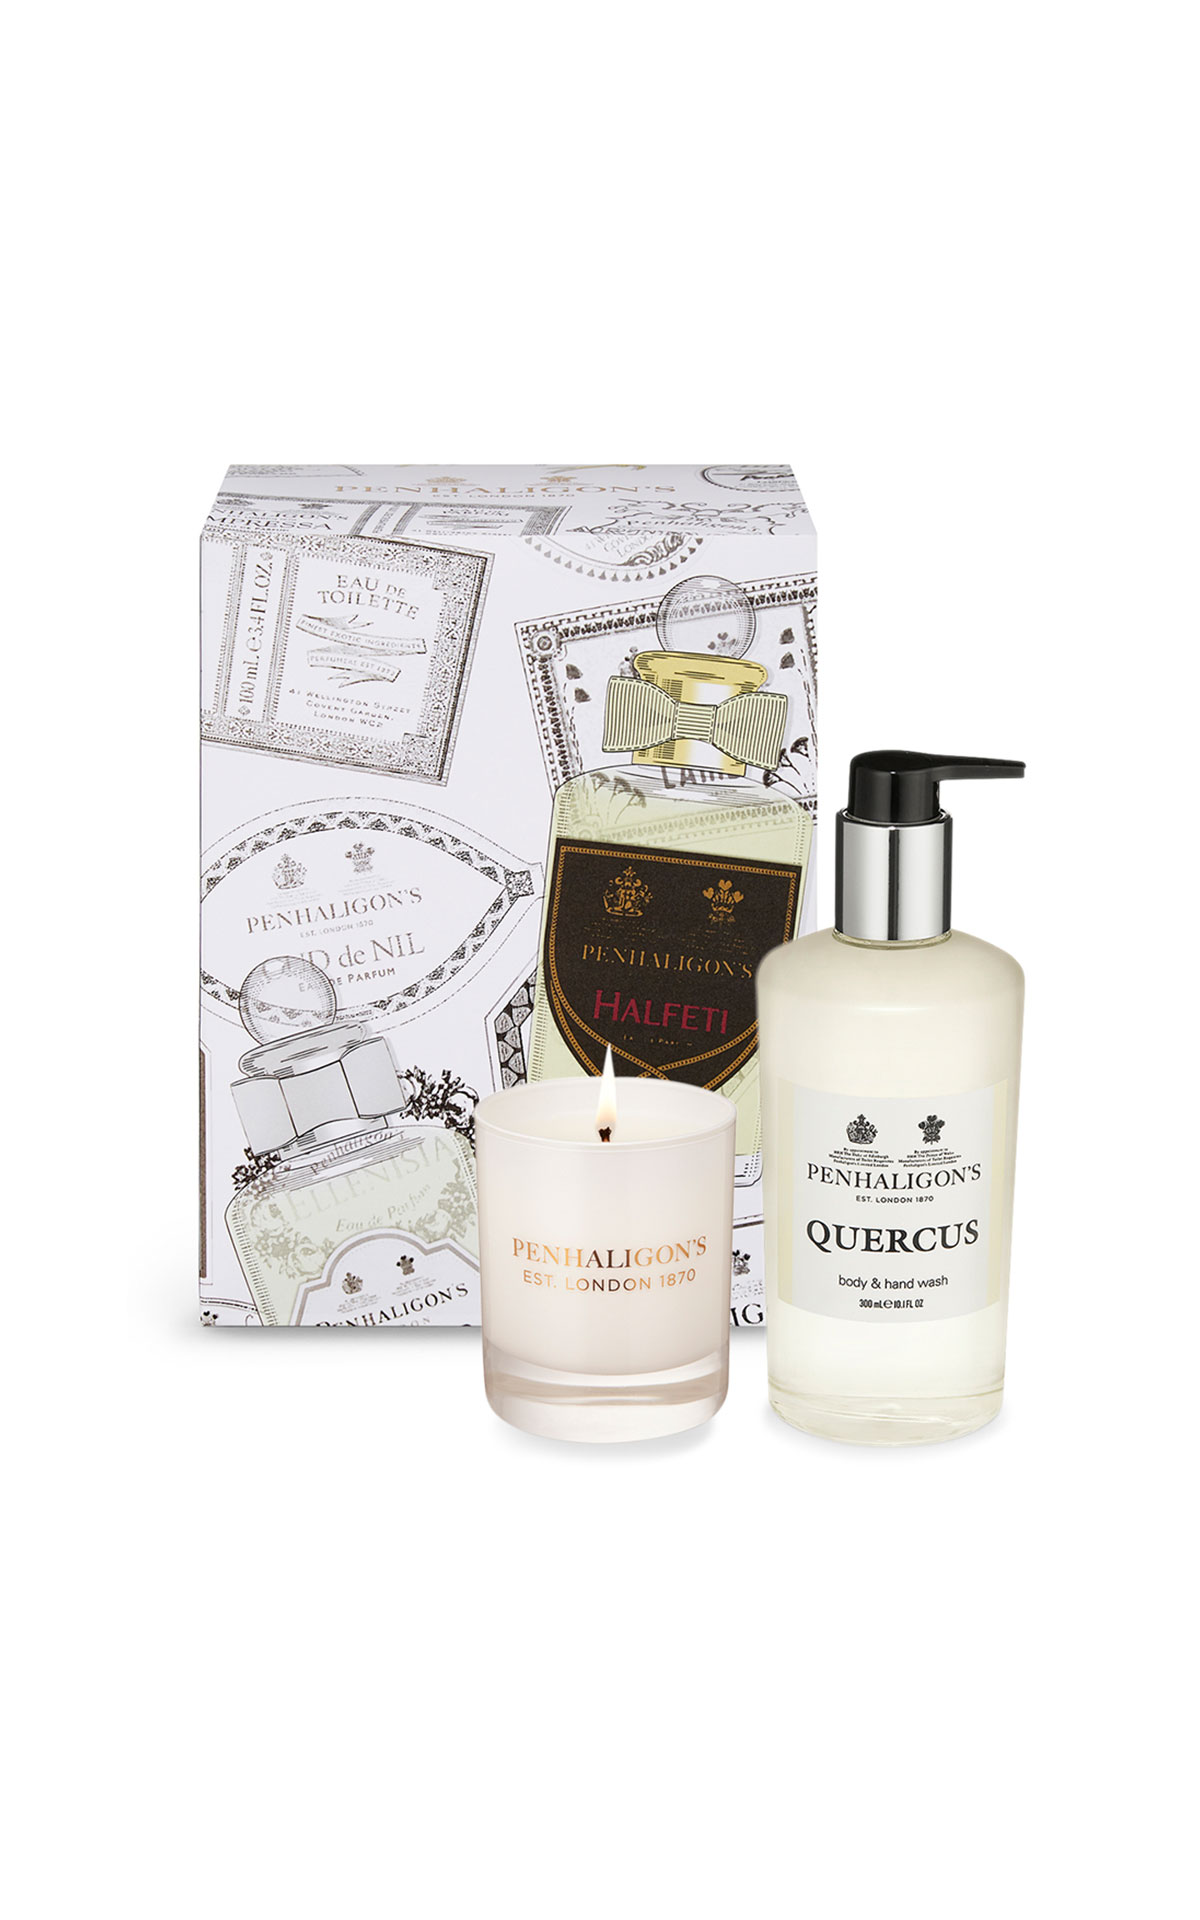 Penhaligon's Quercus 100ml unboxed and Quercus body & hand wash from Bicester Village